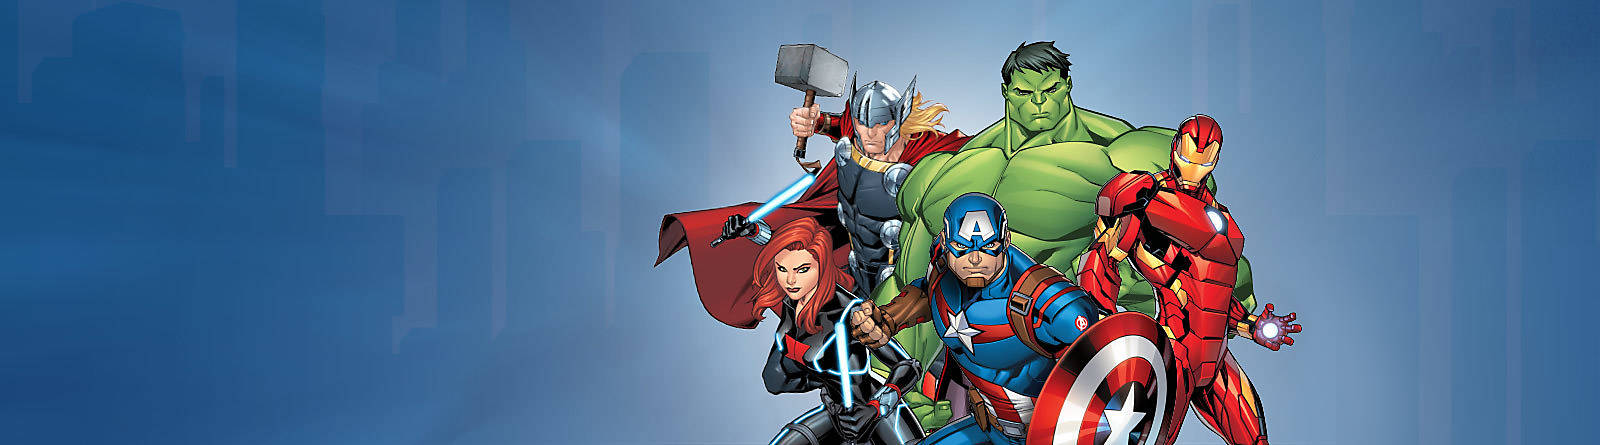 Marvel's Avengers Discover our range of Marvel's Avengers merchandise including toys, costumes, figurines and more